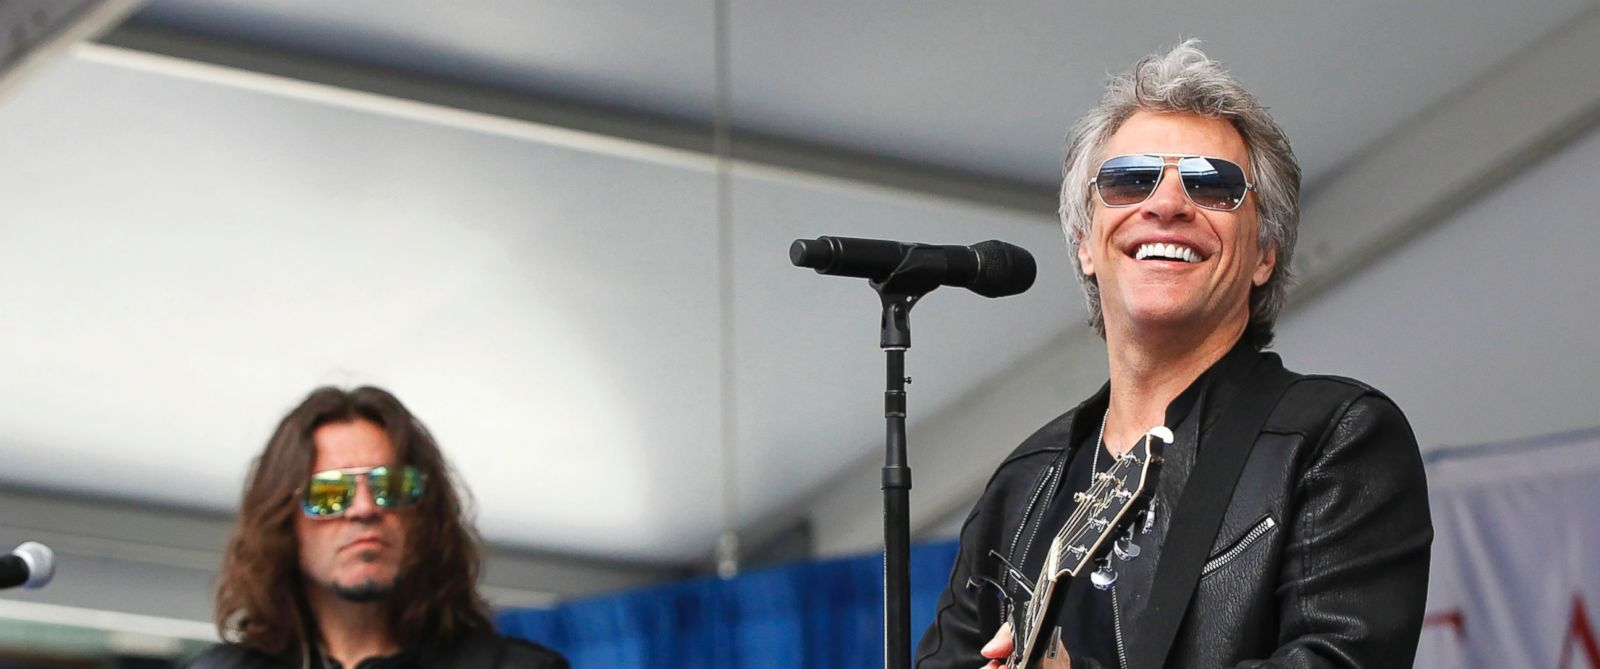 ABC-GMA-BonJovi-rc-170516_12x5_1600_1495024264672.jpg